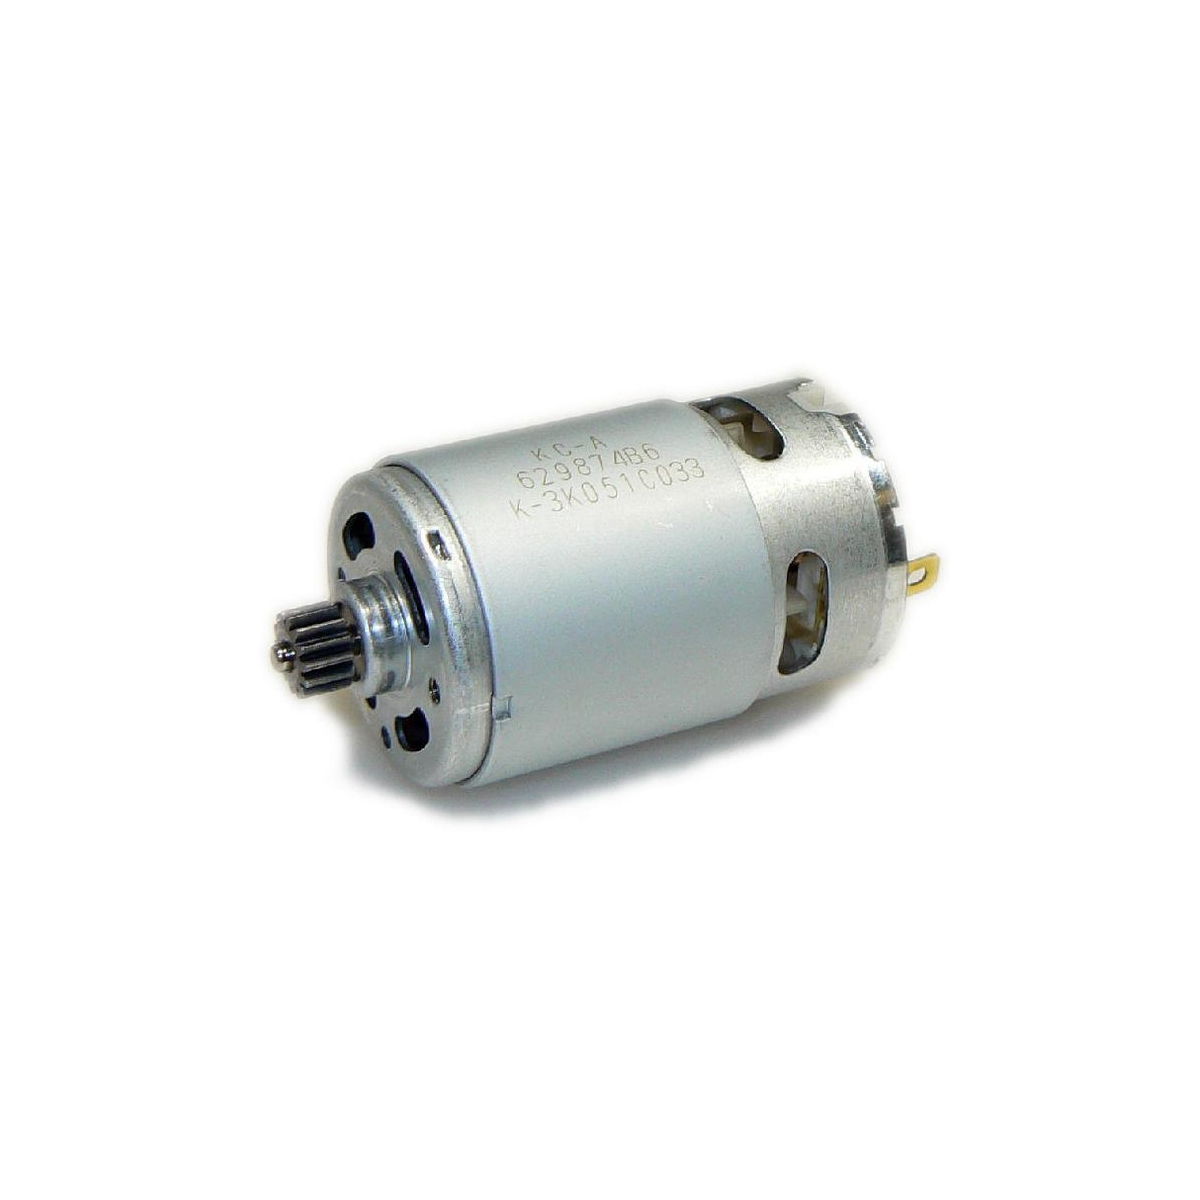 Code 629823-3 Remplacement Perceuse 8280 Moteur Dc 14,4 V Makita